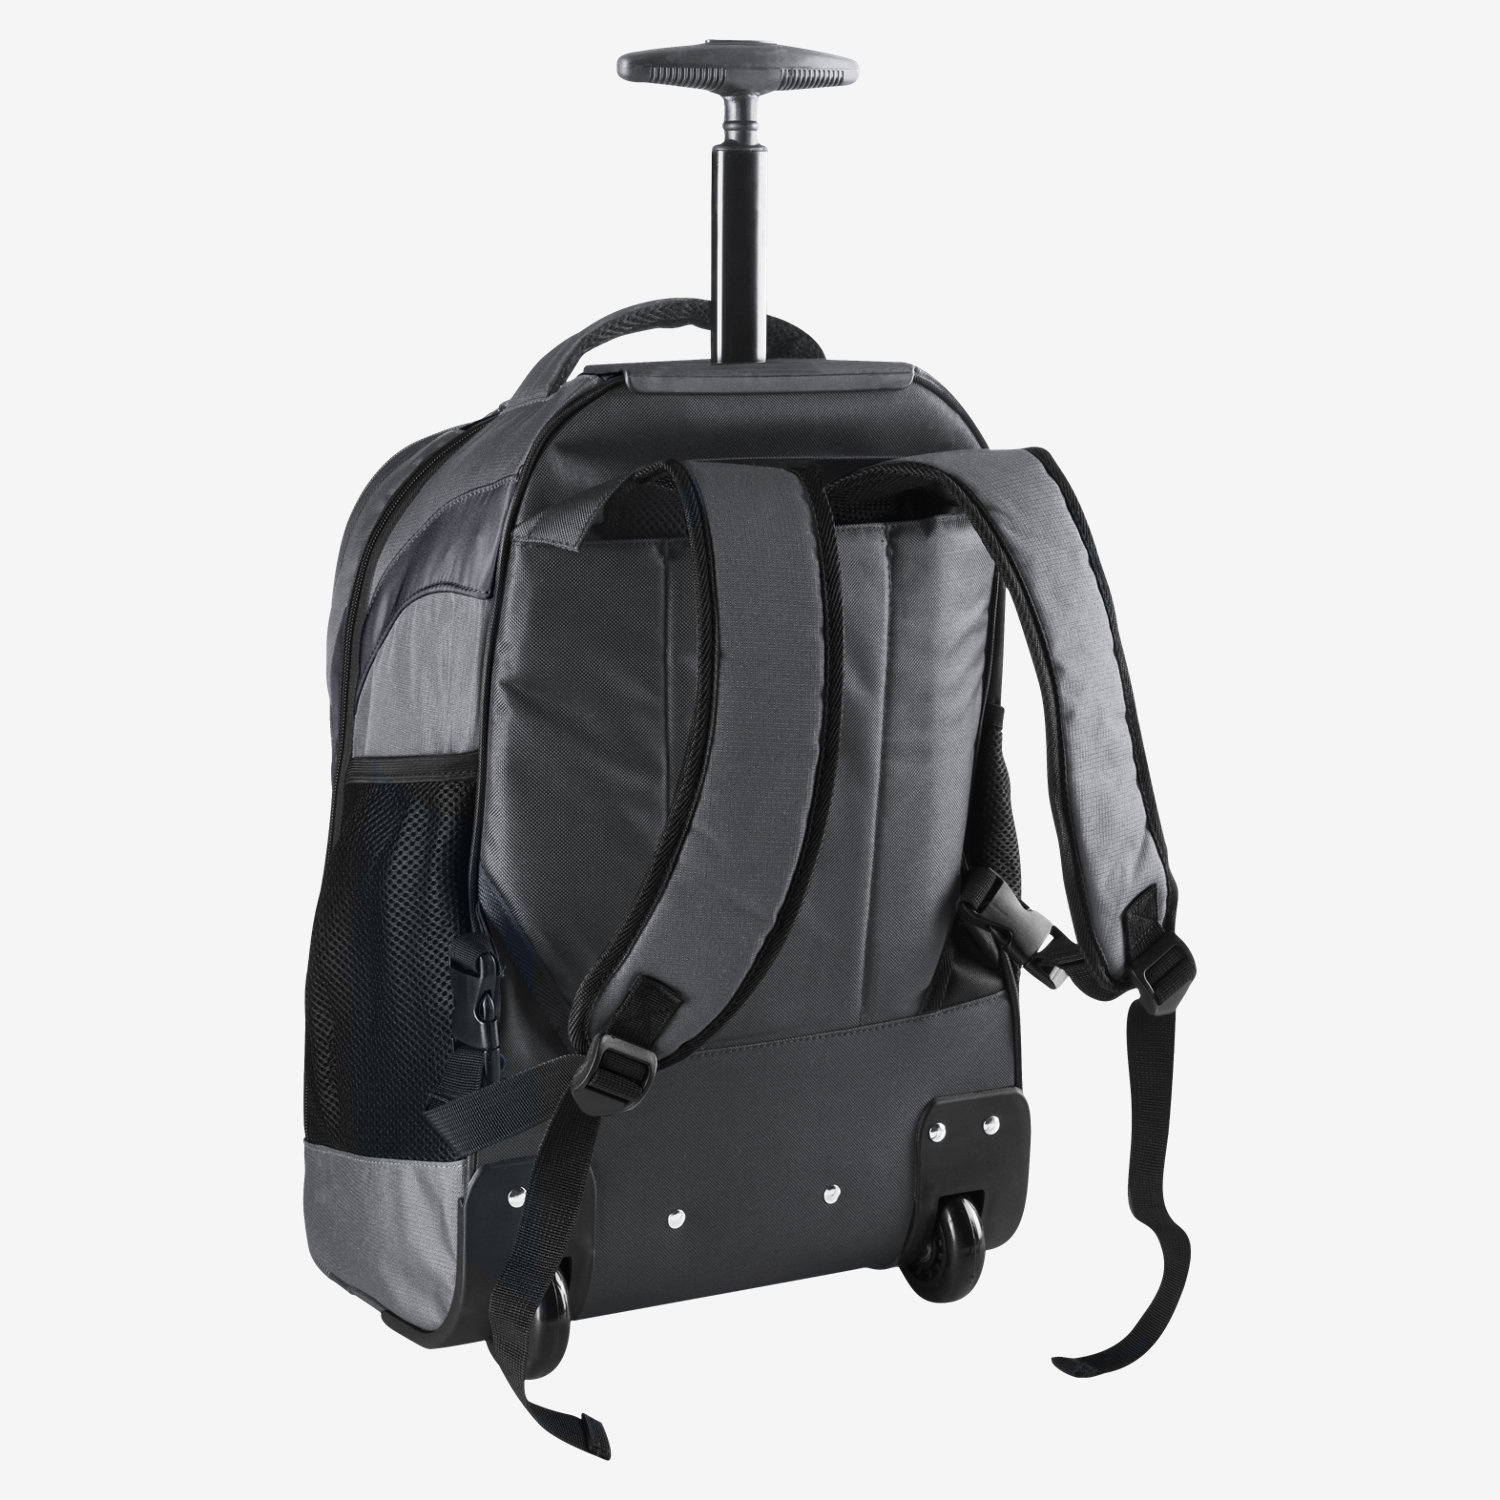 Best Rolling Laptop Backpack oEGr9Q1r